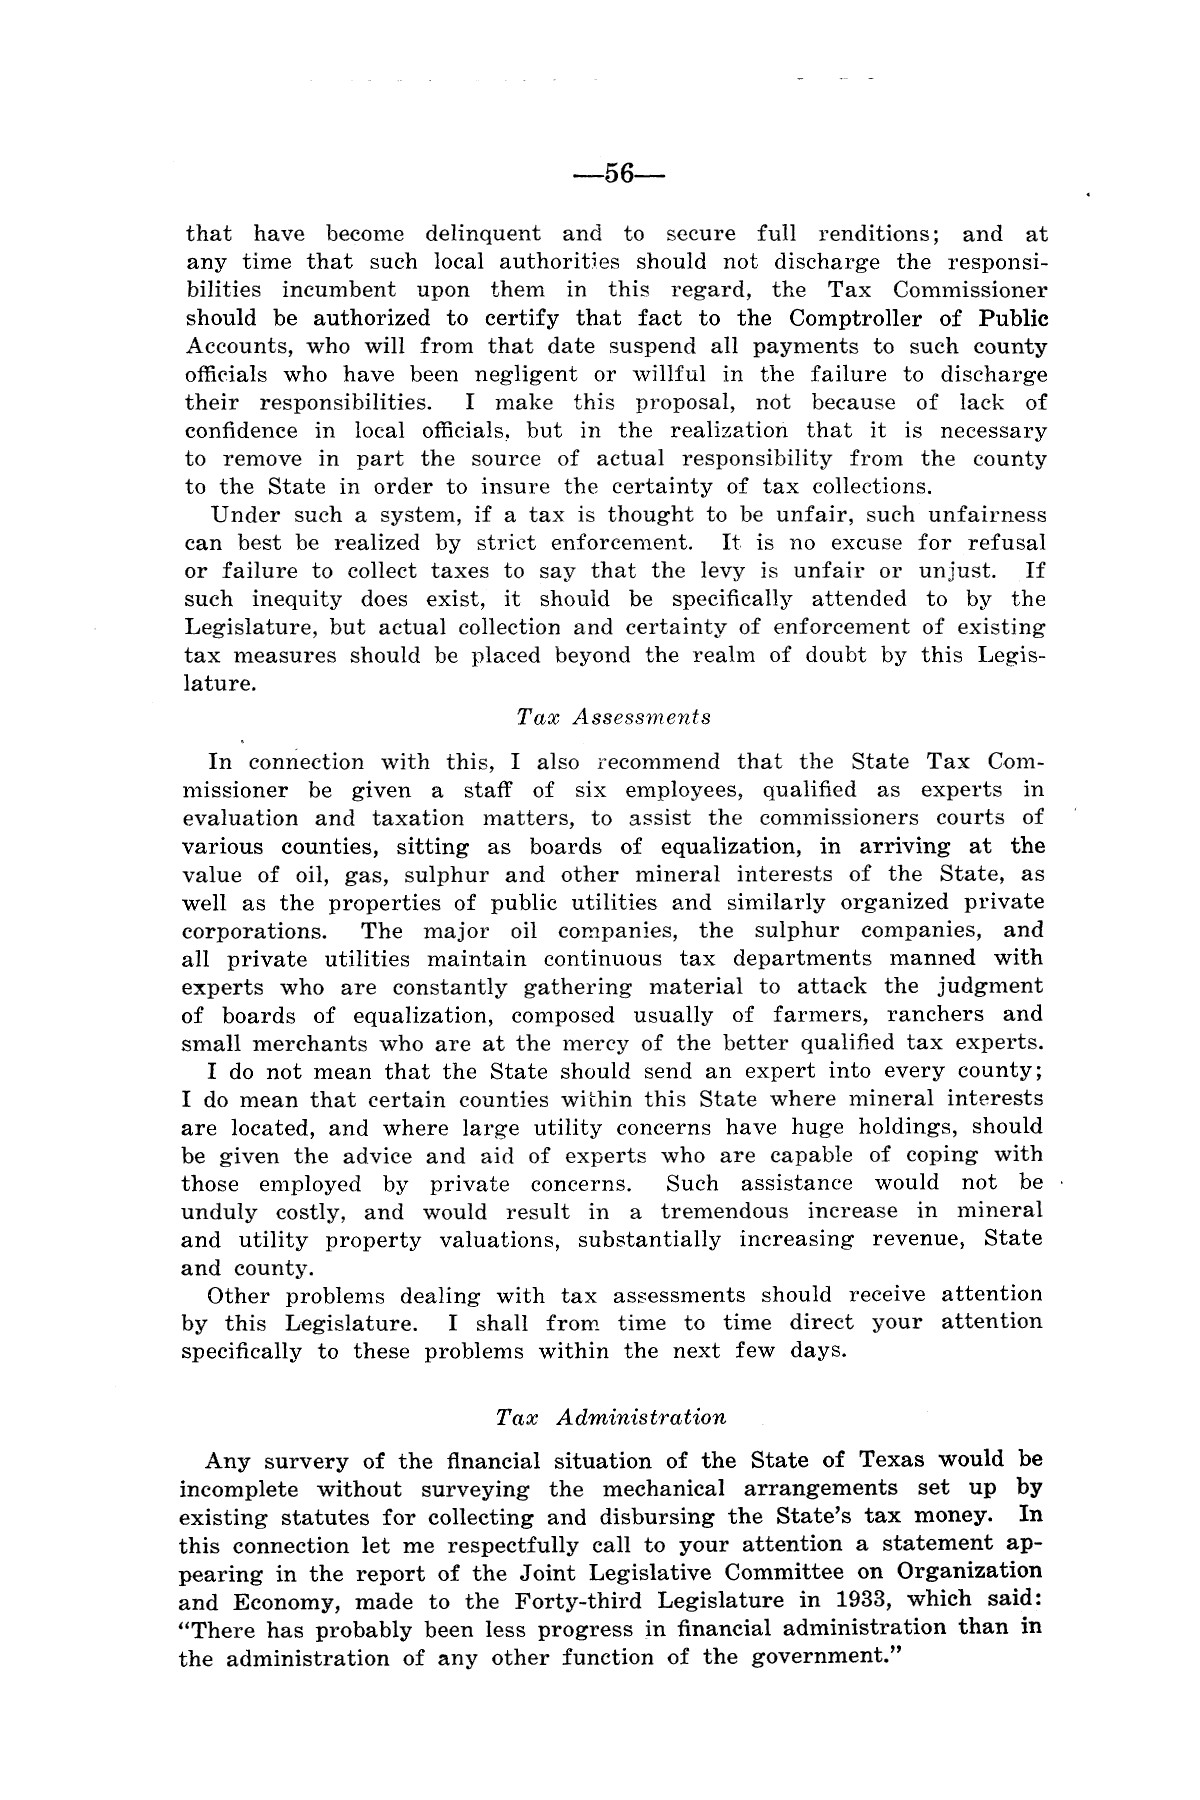 Legislative Messages of Hon. James V. Allred, Governor of Texas 1935-1939                                                                                                      [Sequence #]: 55 of 263